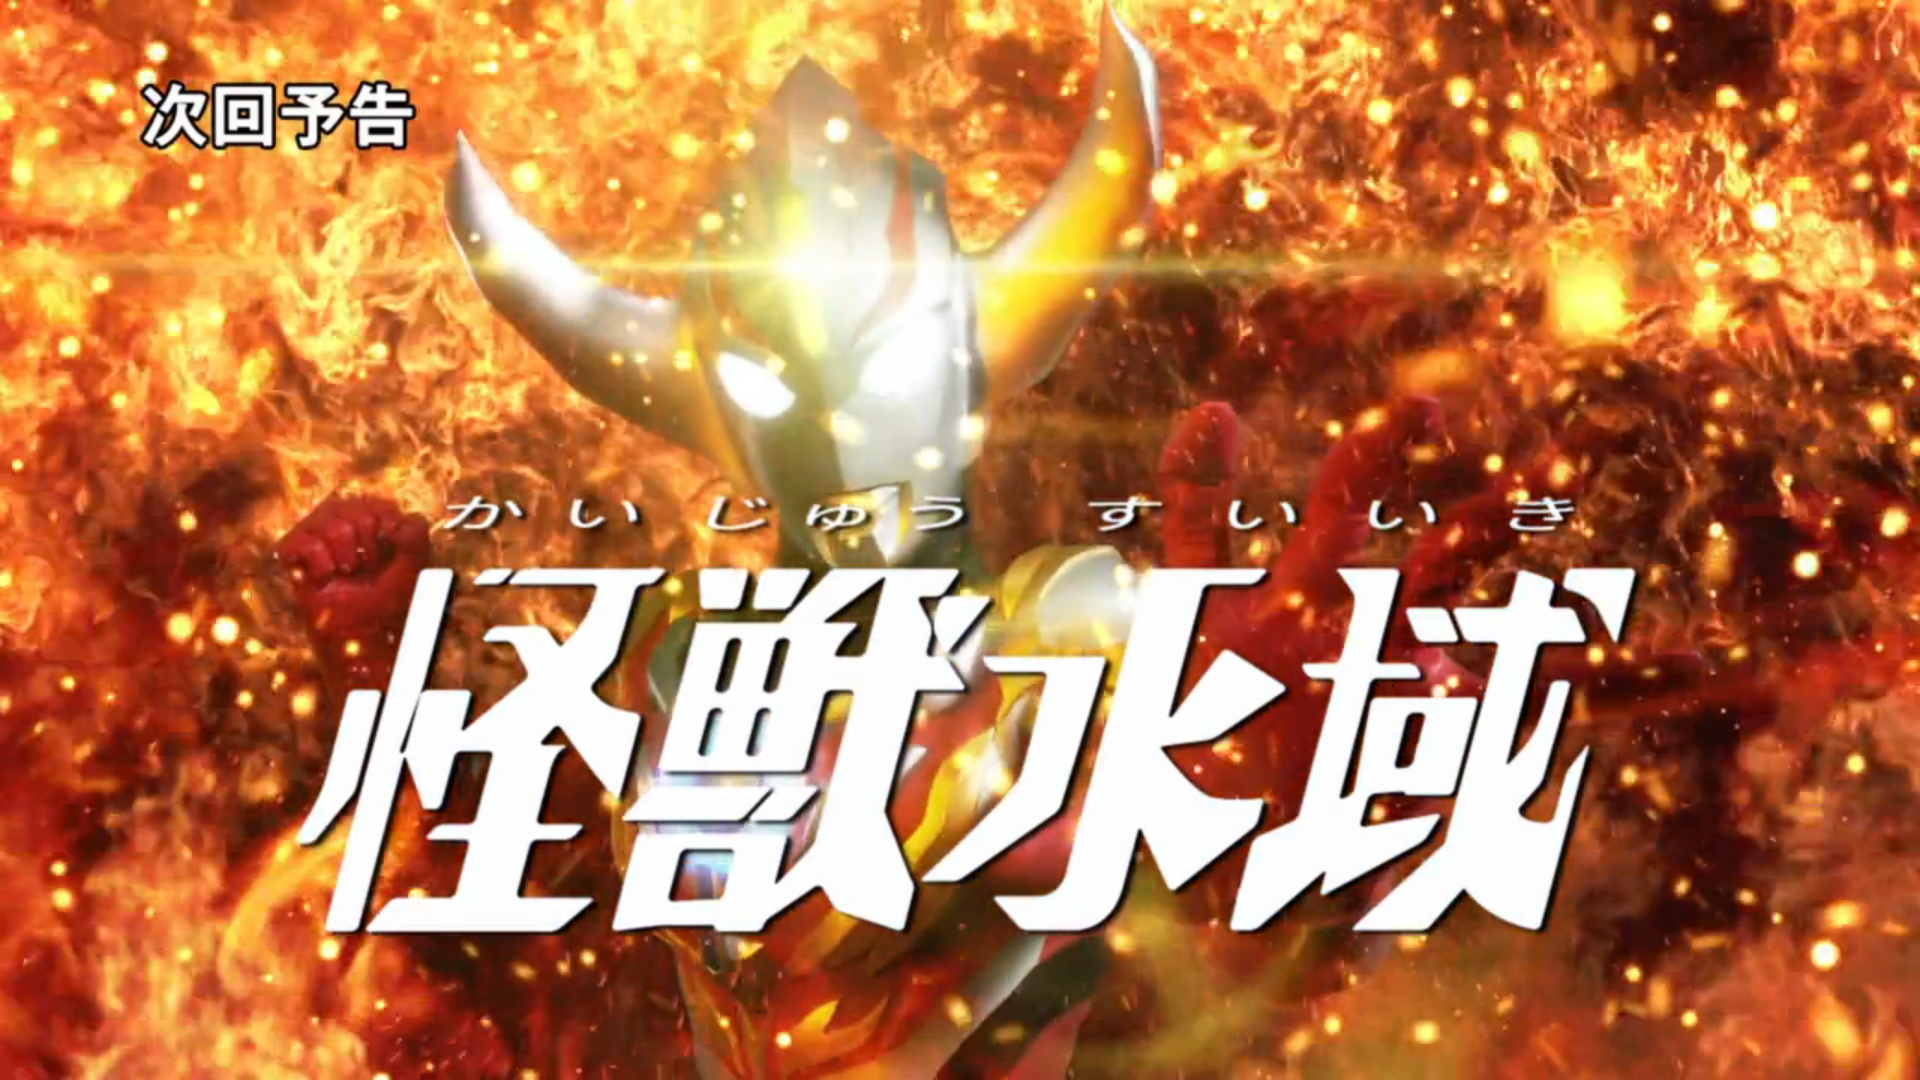 Next Time On Ultraman Orb: Episode 3